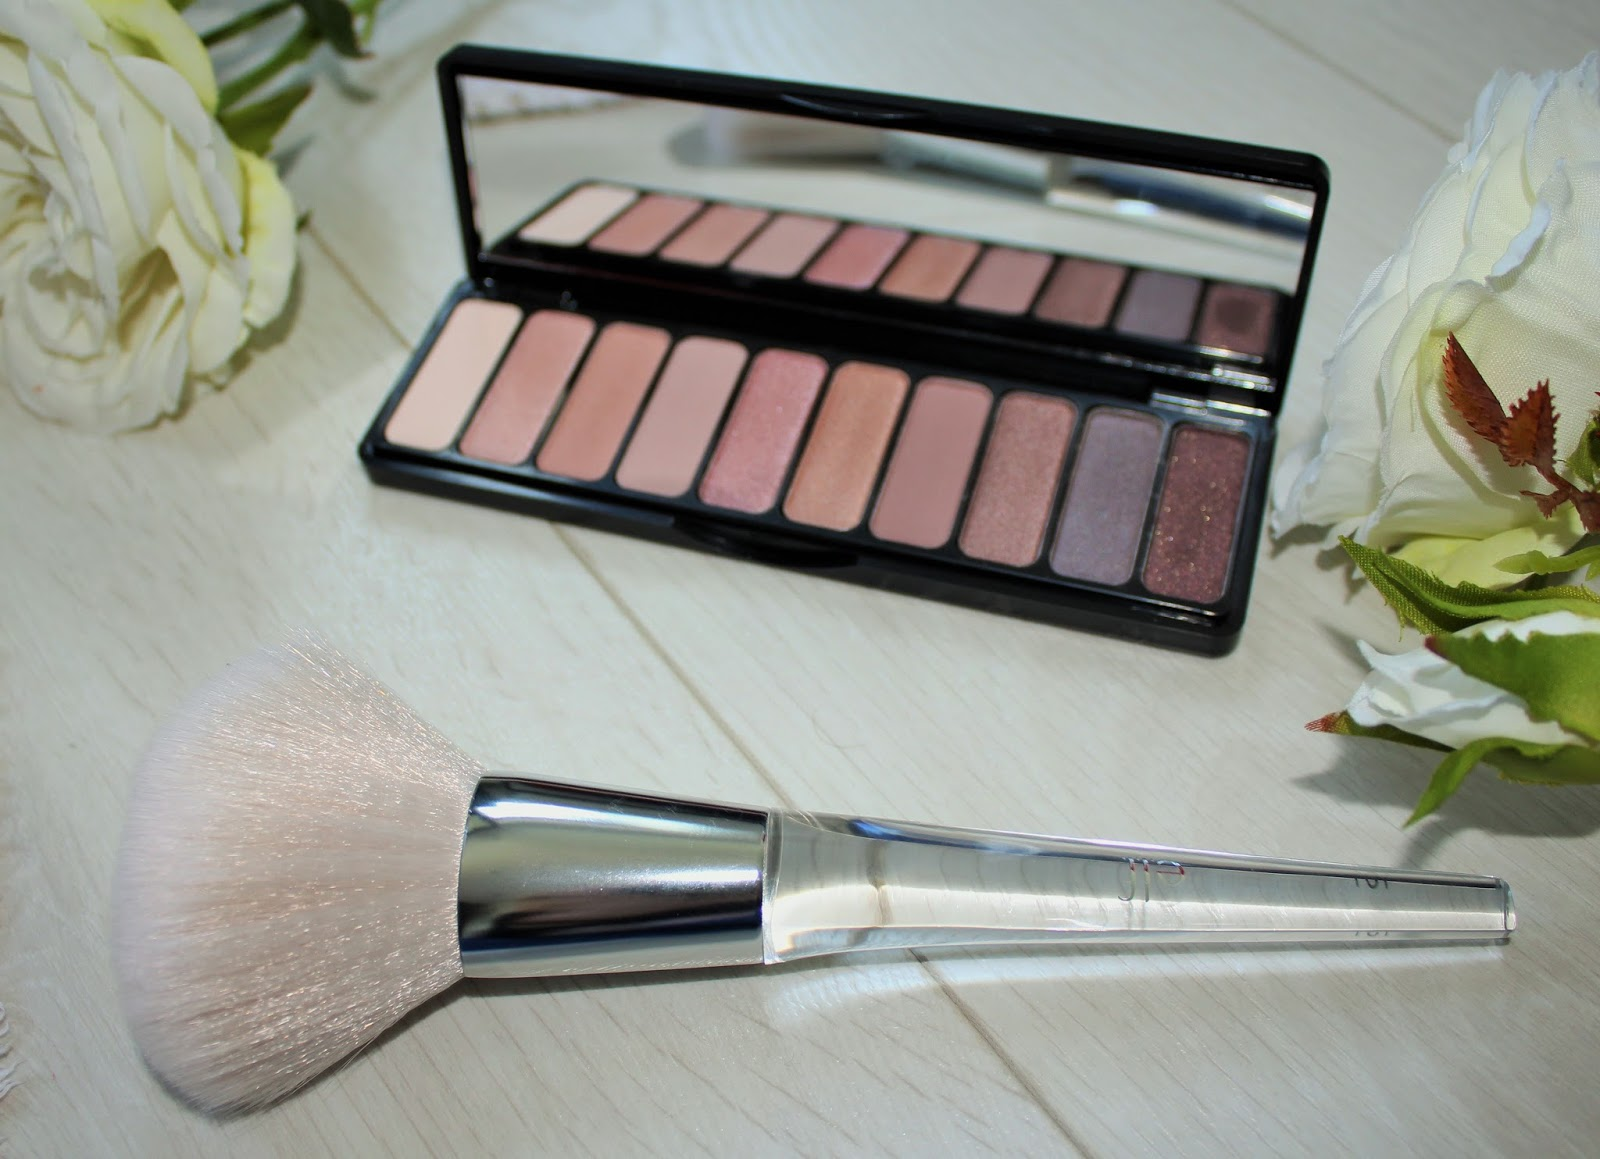 E.l.f. Cosmetics 5 - Precision Powder Brush